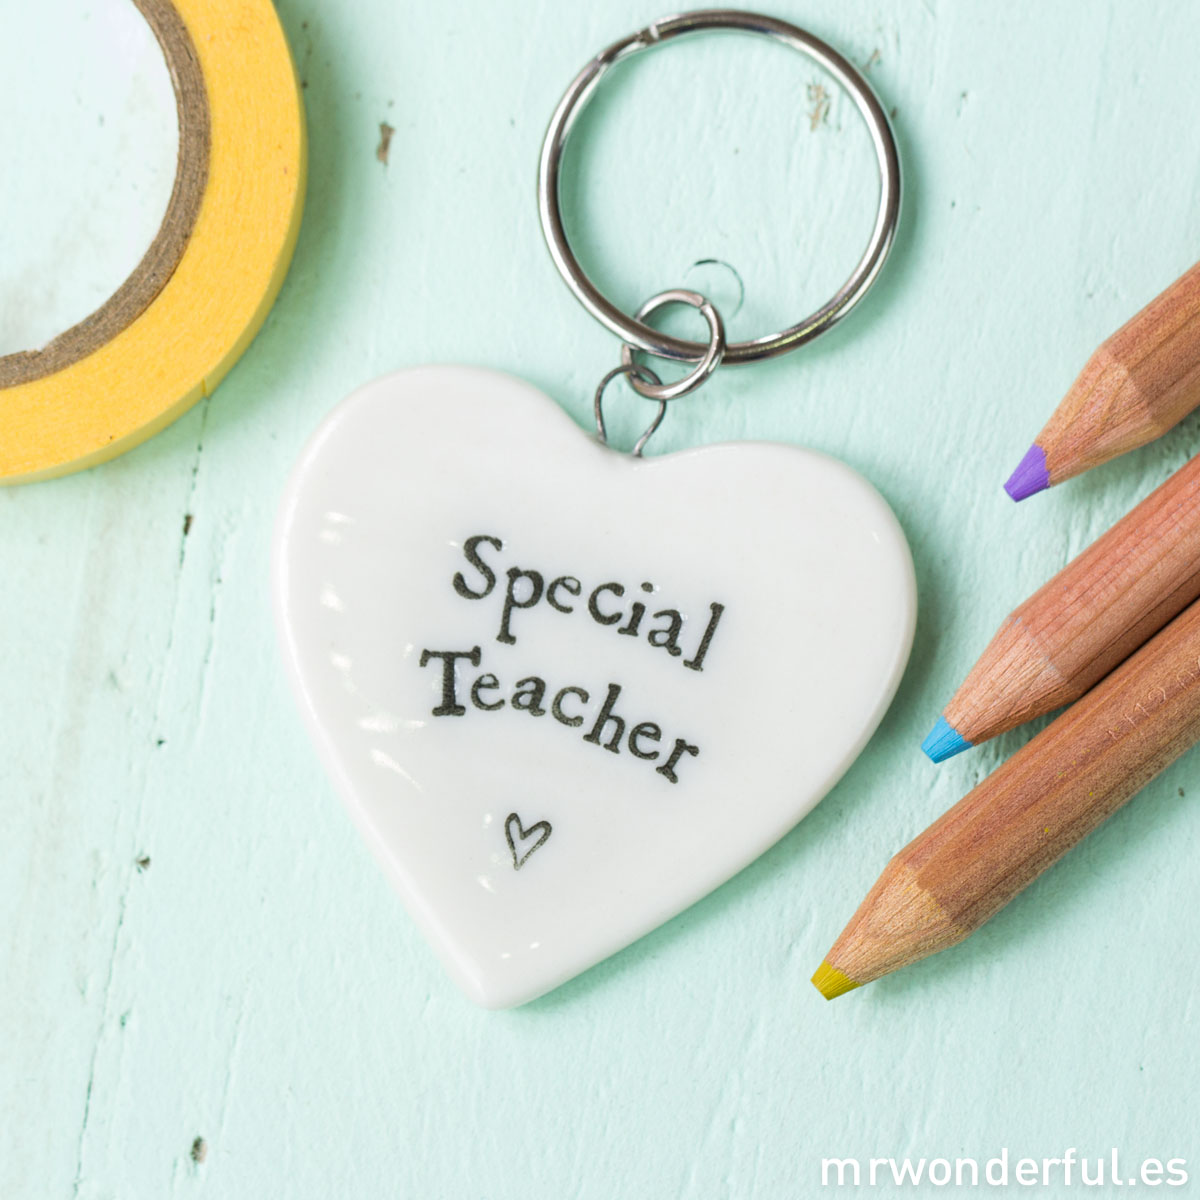 mrwonderful_170_llavero-corazon-porcelana_ special-teacher-1-2